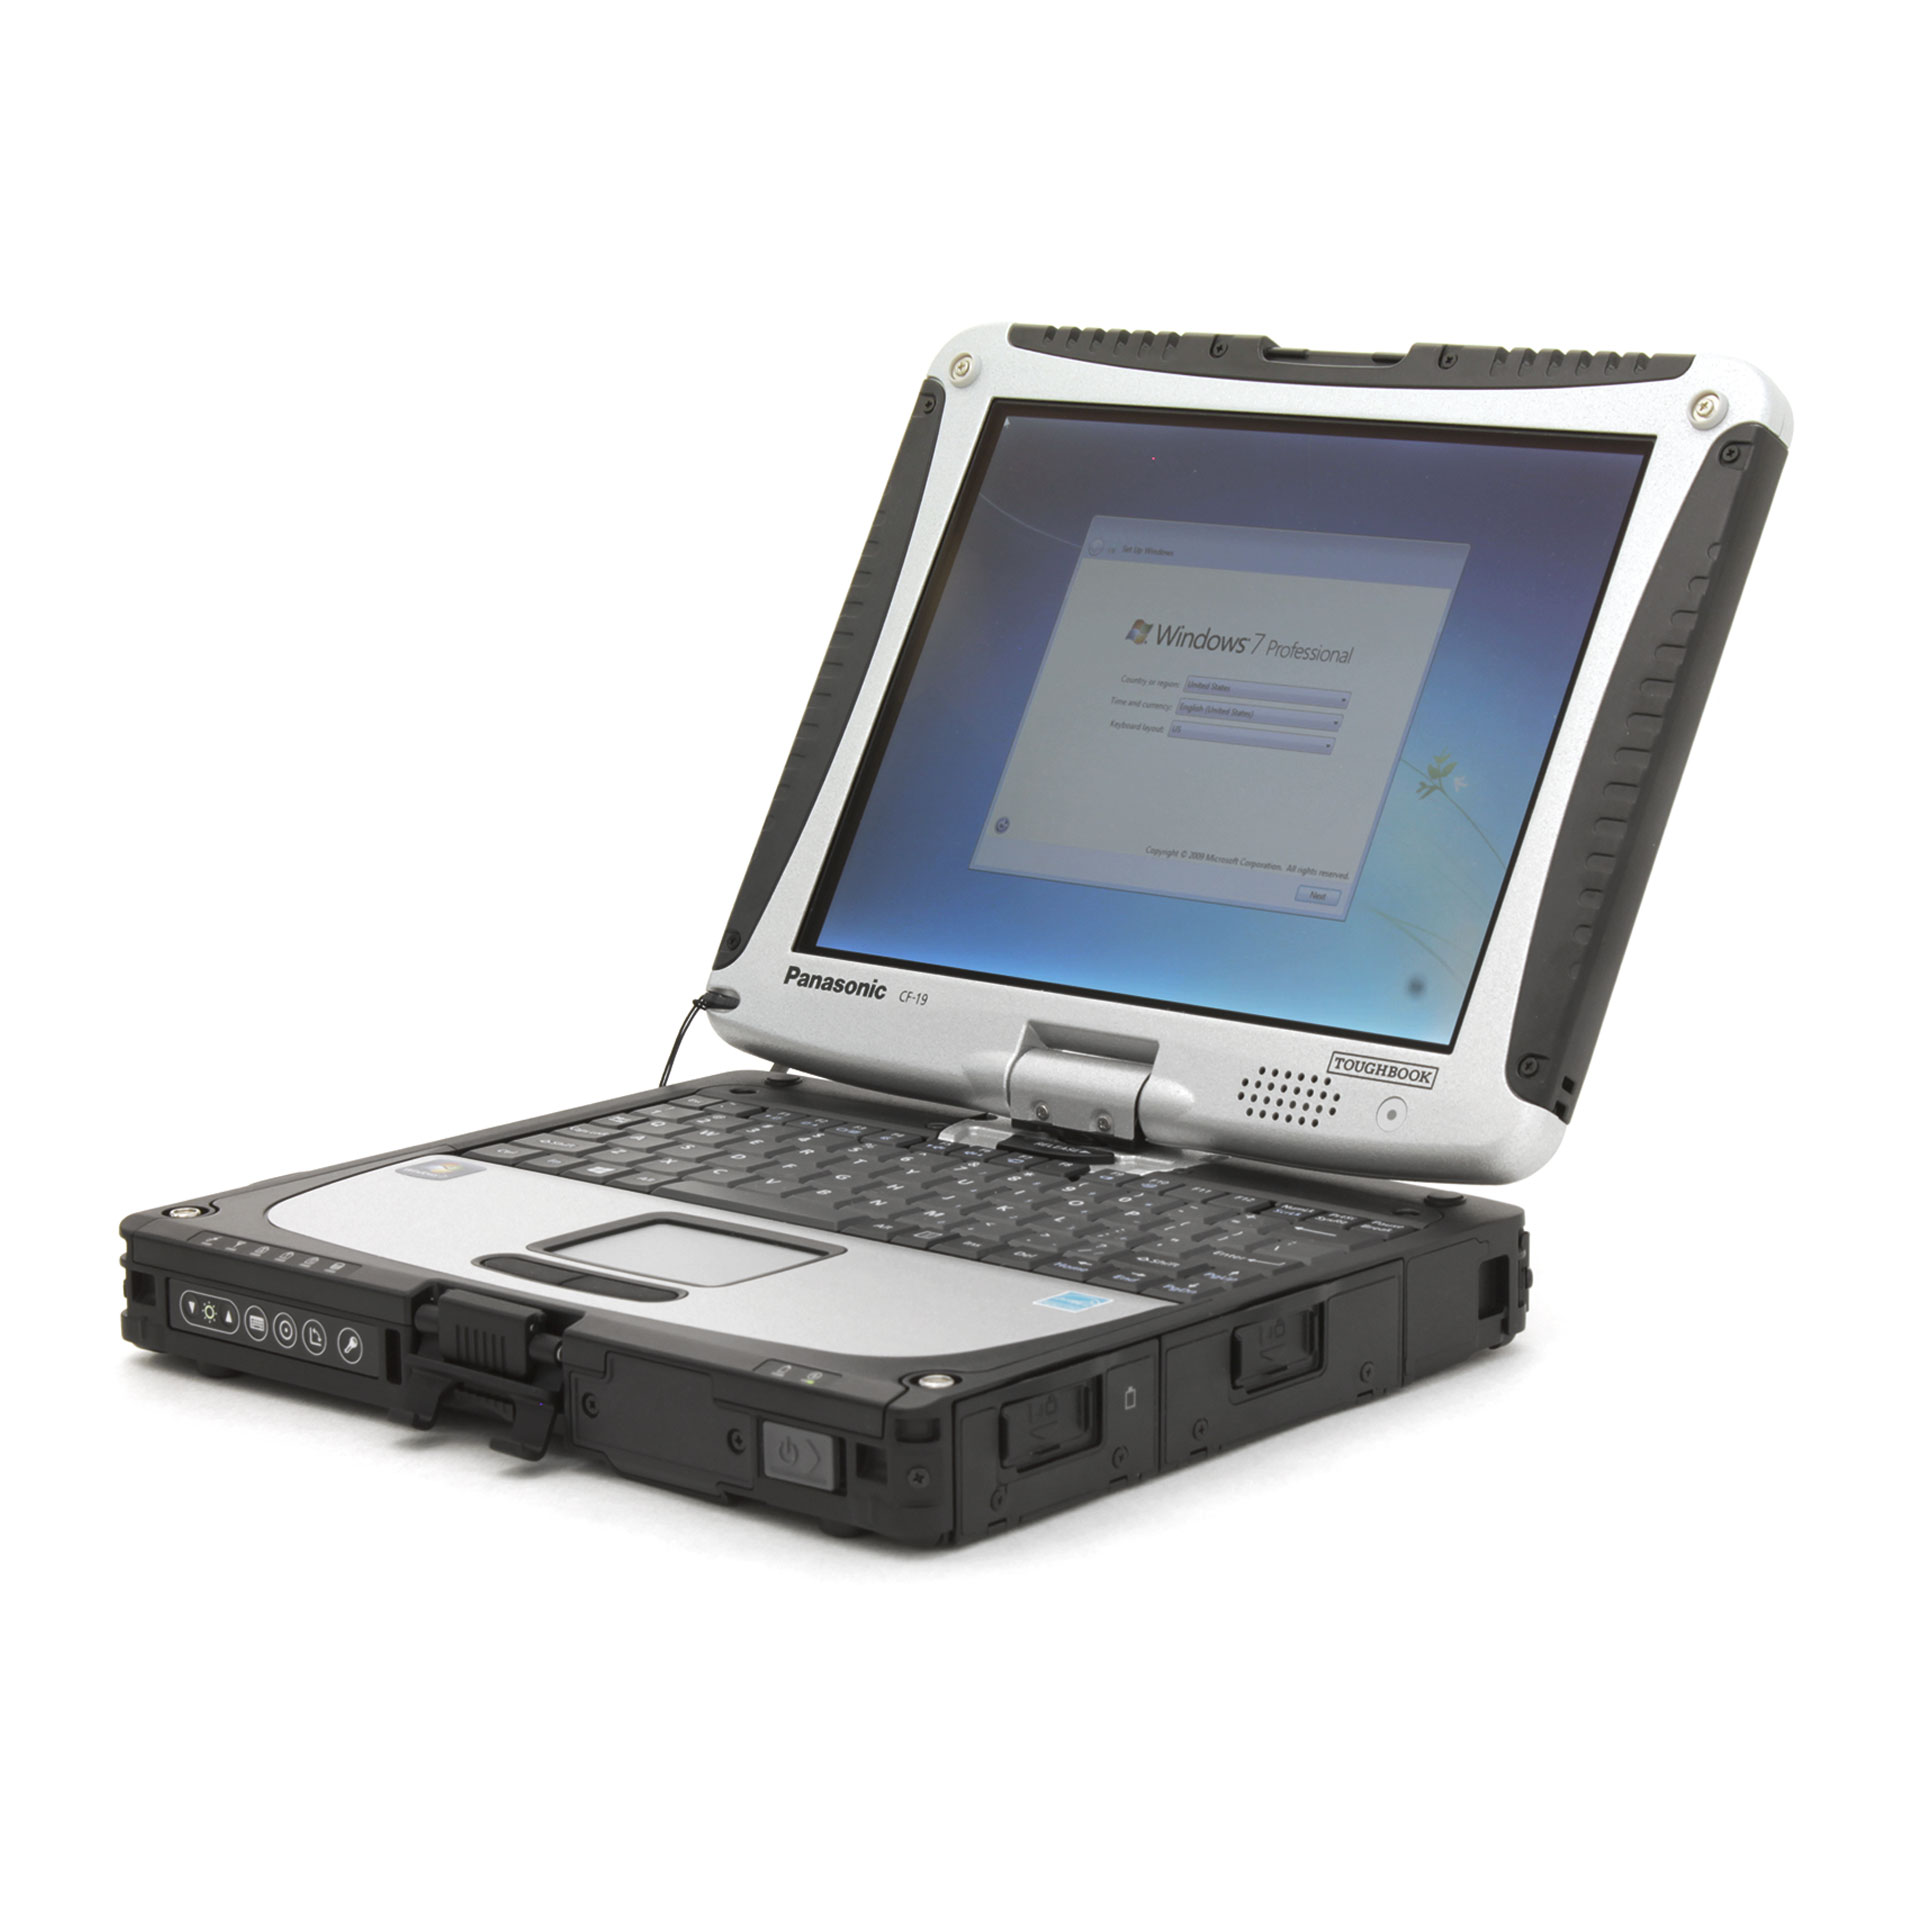 "Panasonic Toughbook 19 10.1"" i5 3610ME 4GB 500GB CF-19ZA001DM"